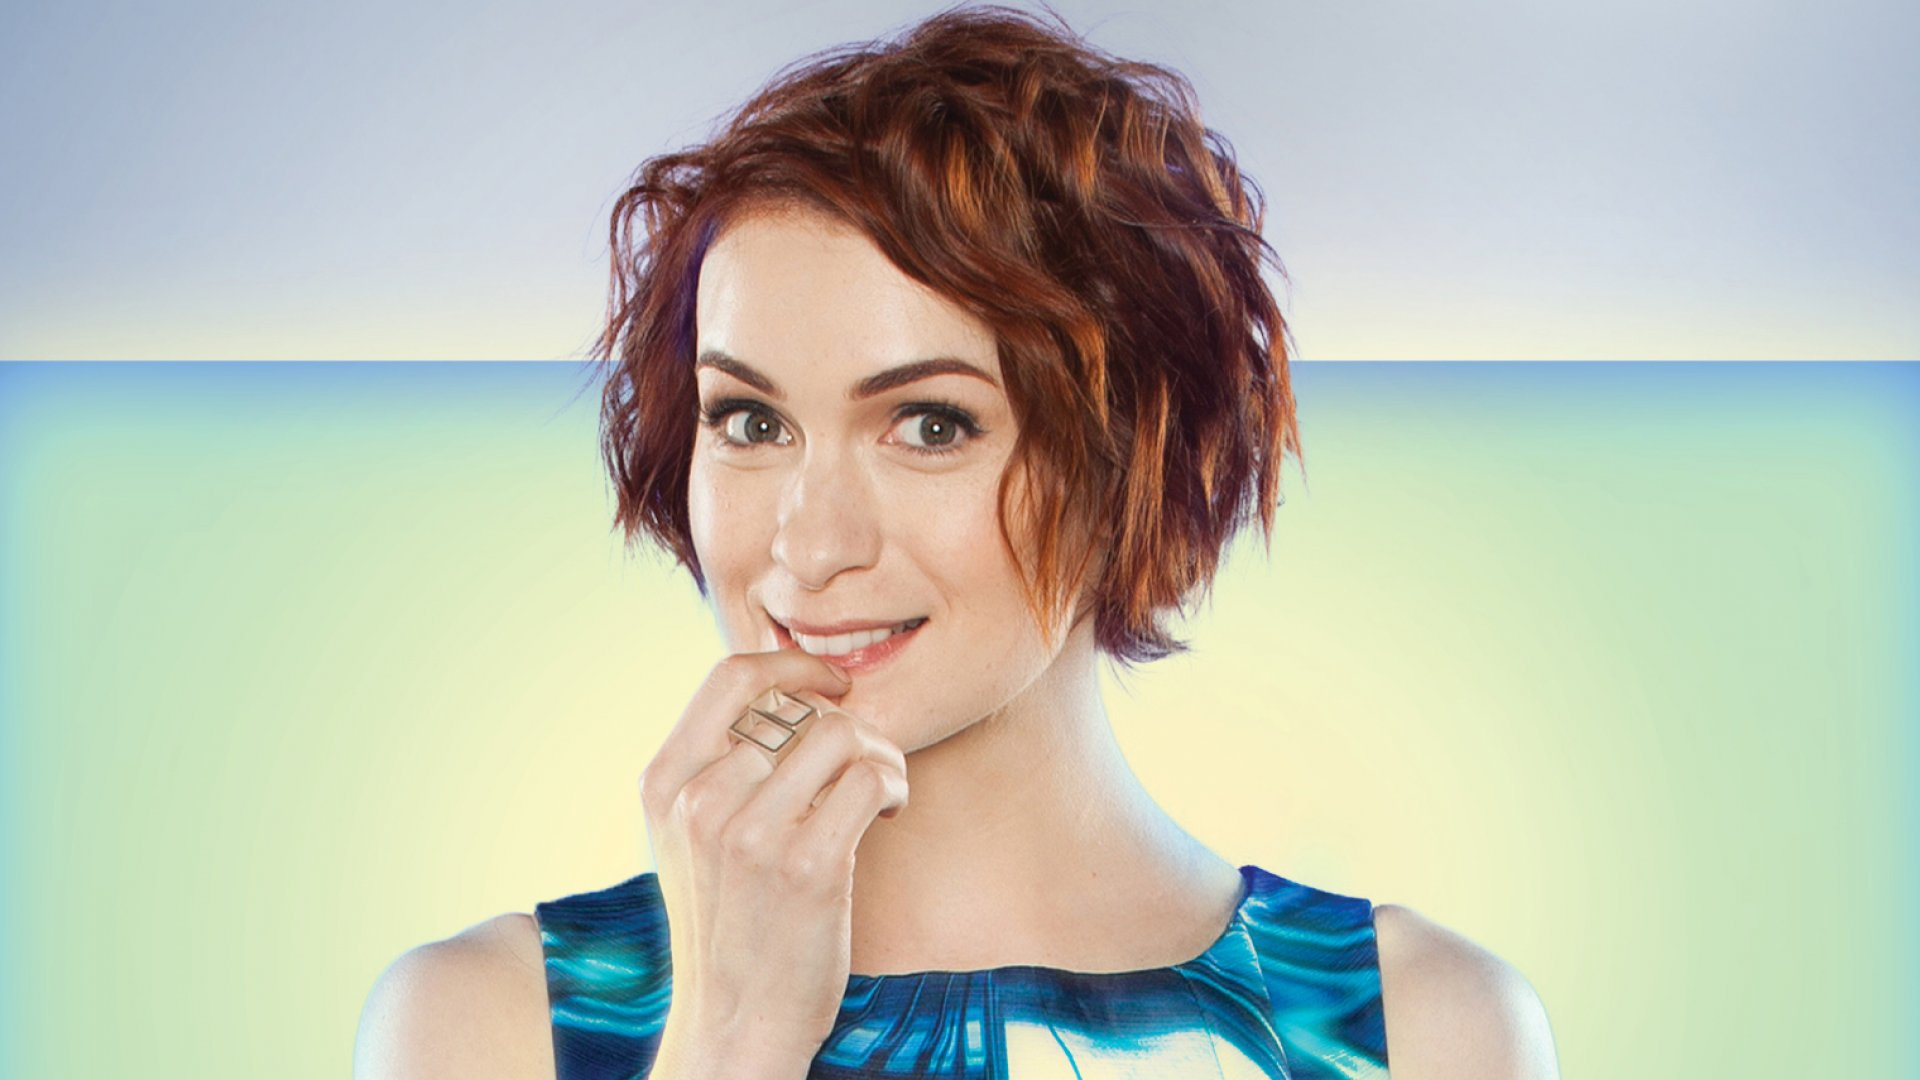 Felicia Day photo gallery - high quality pics of Felicia